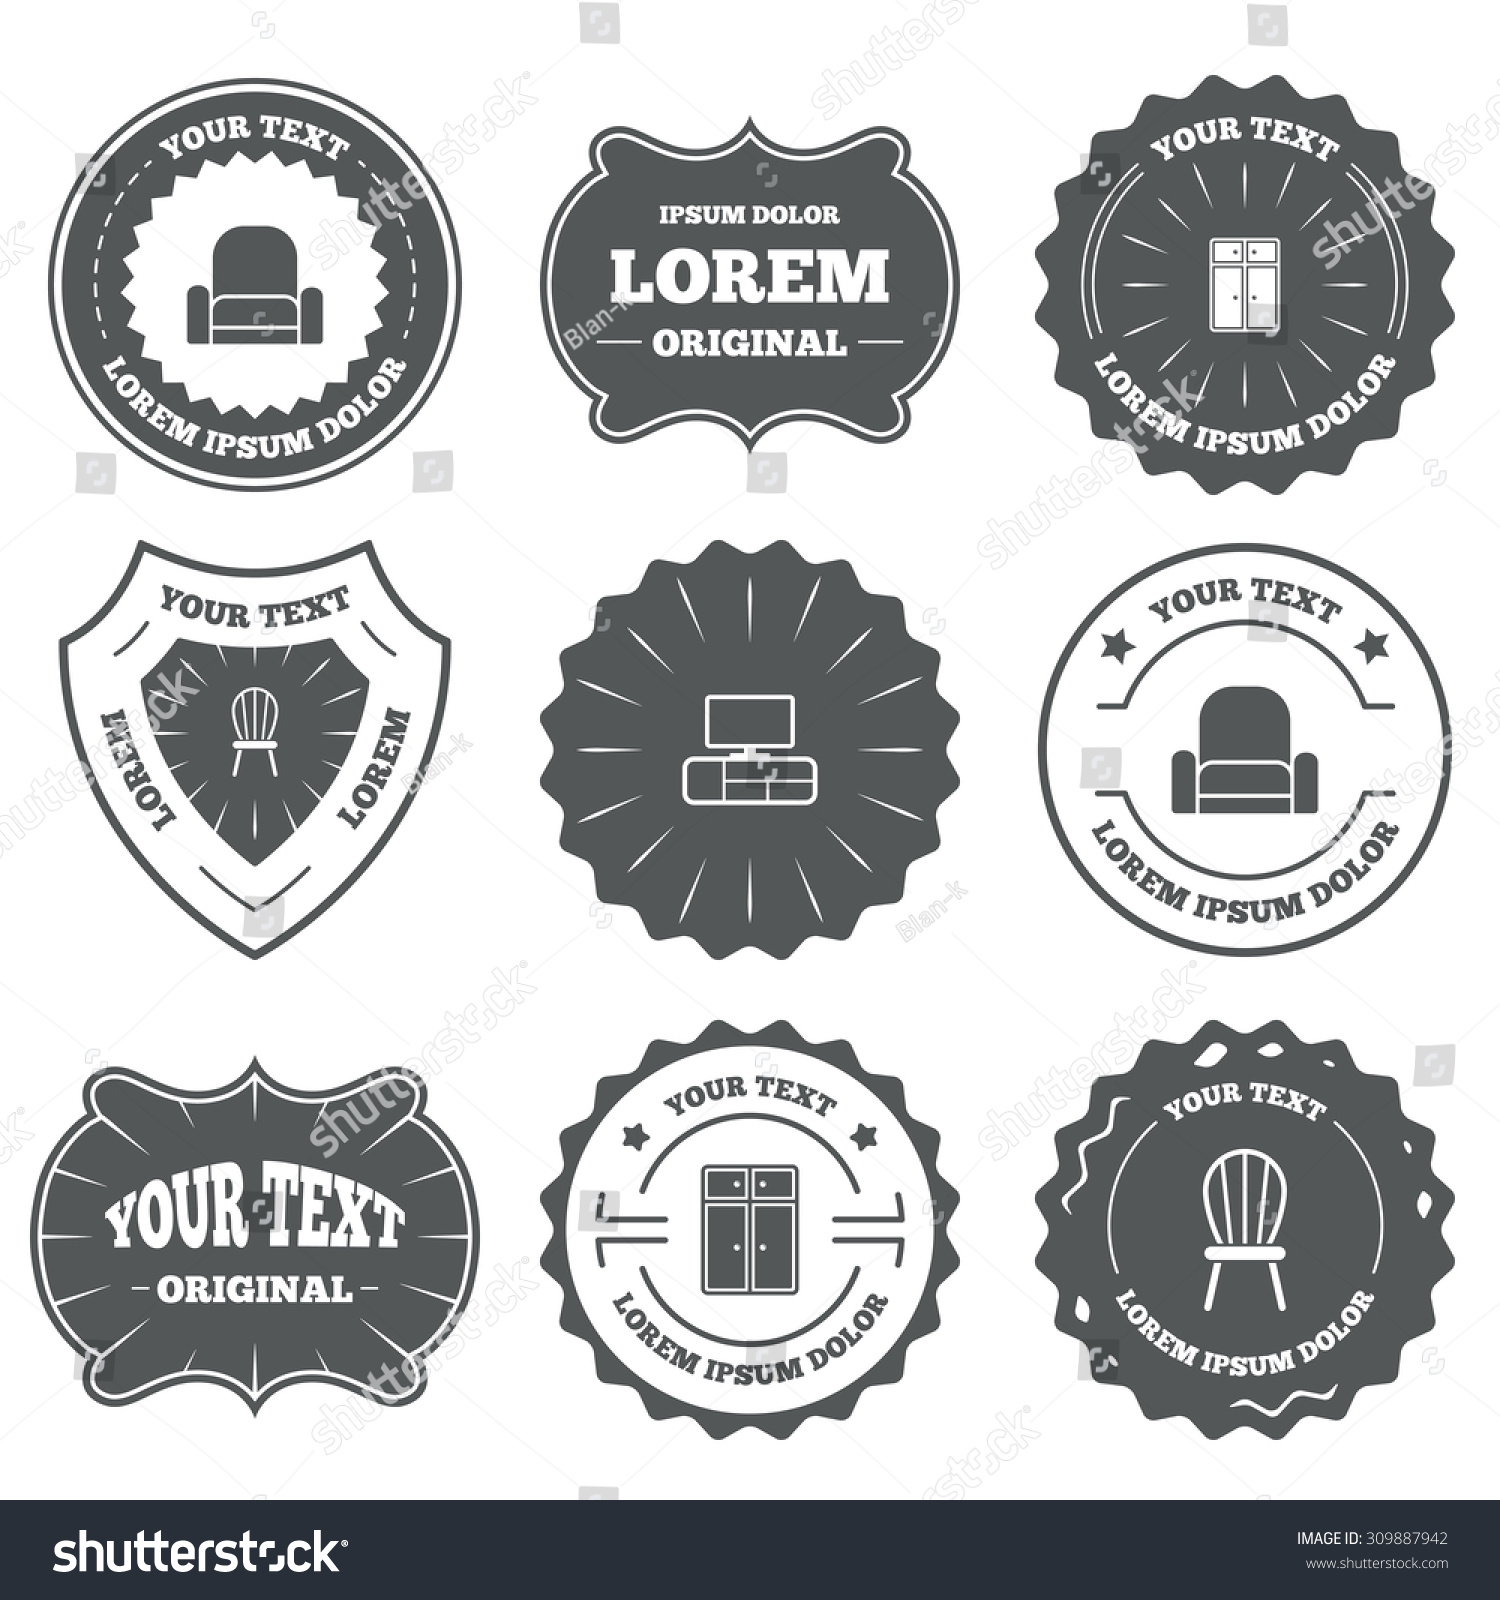 Furniture logo vector free download - Furniture Icons Cupboard Chair And Tv Table Signs